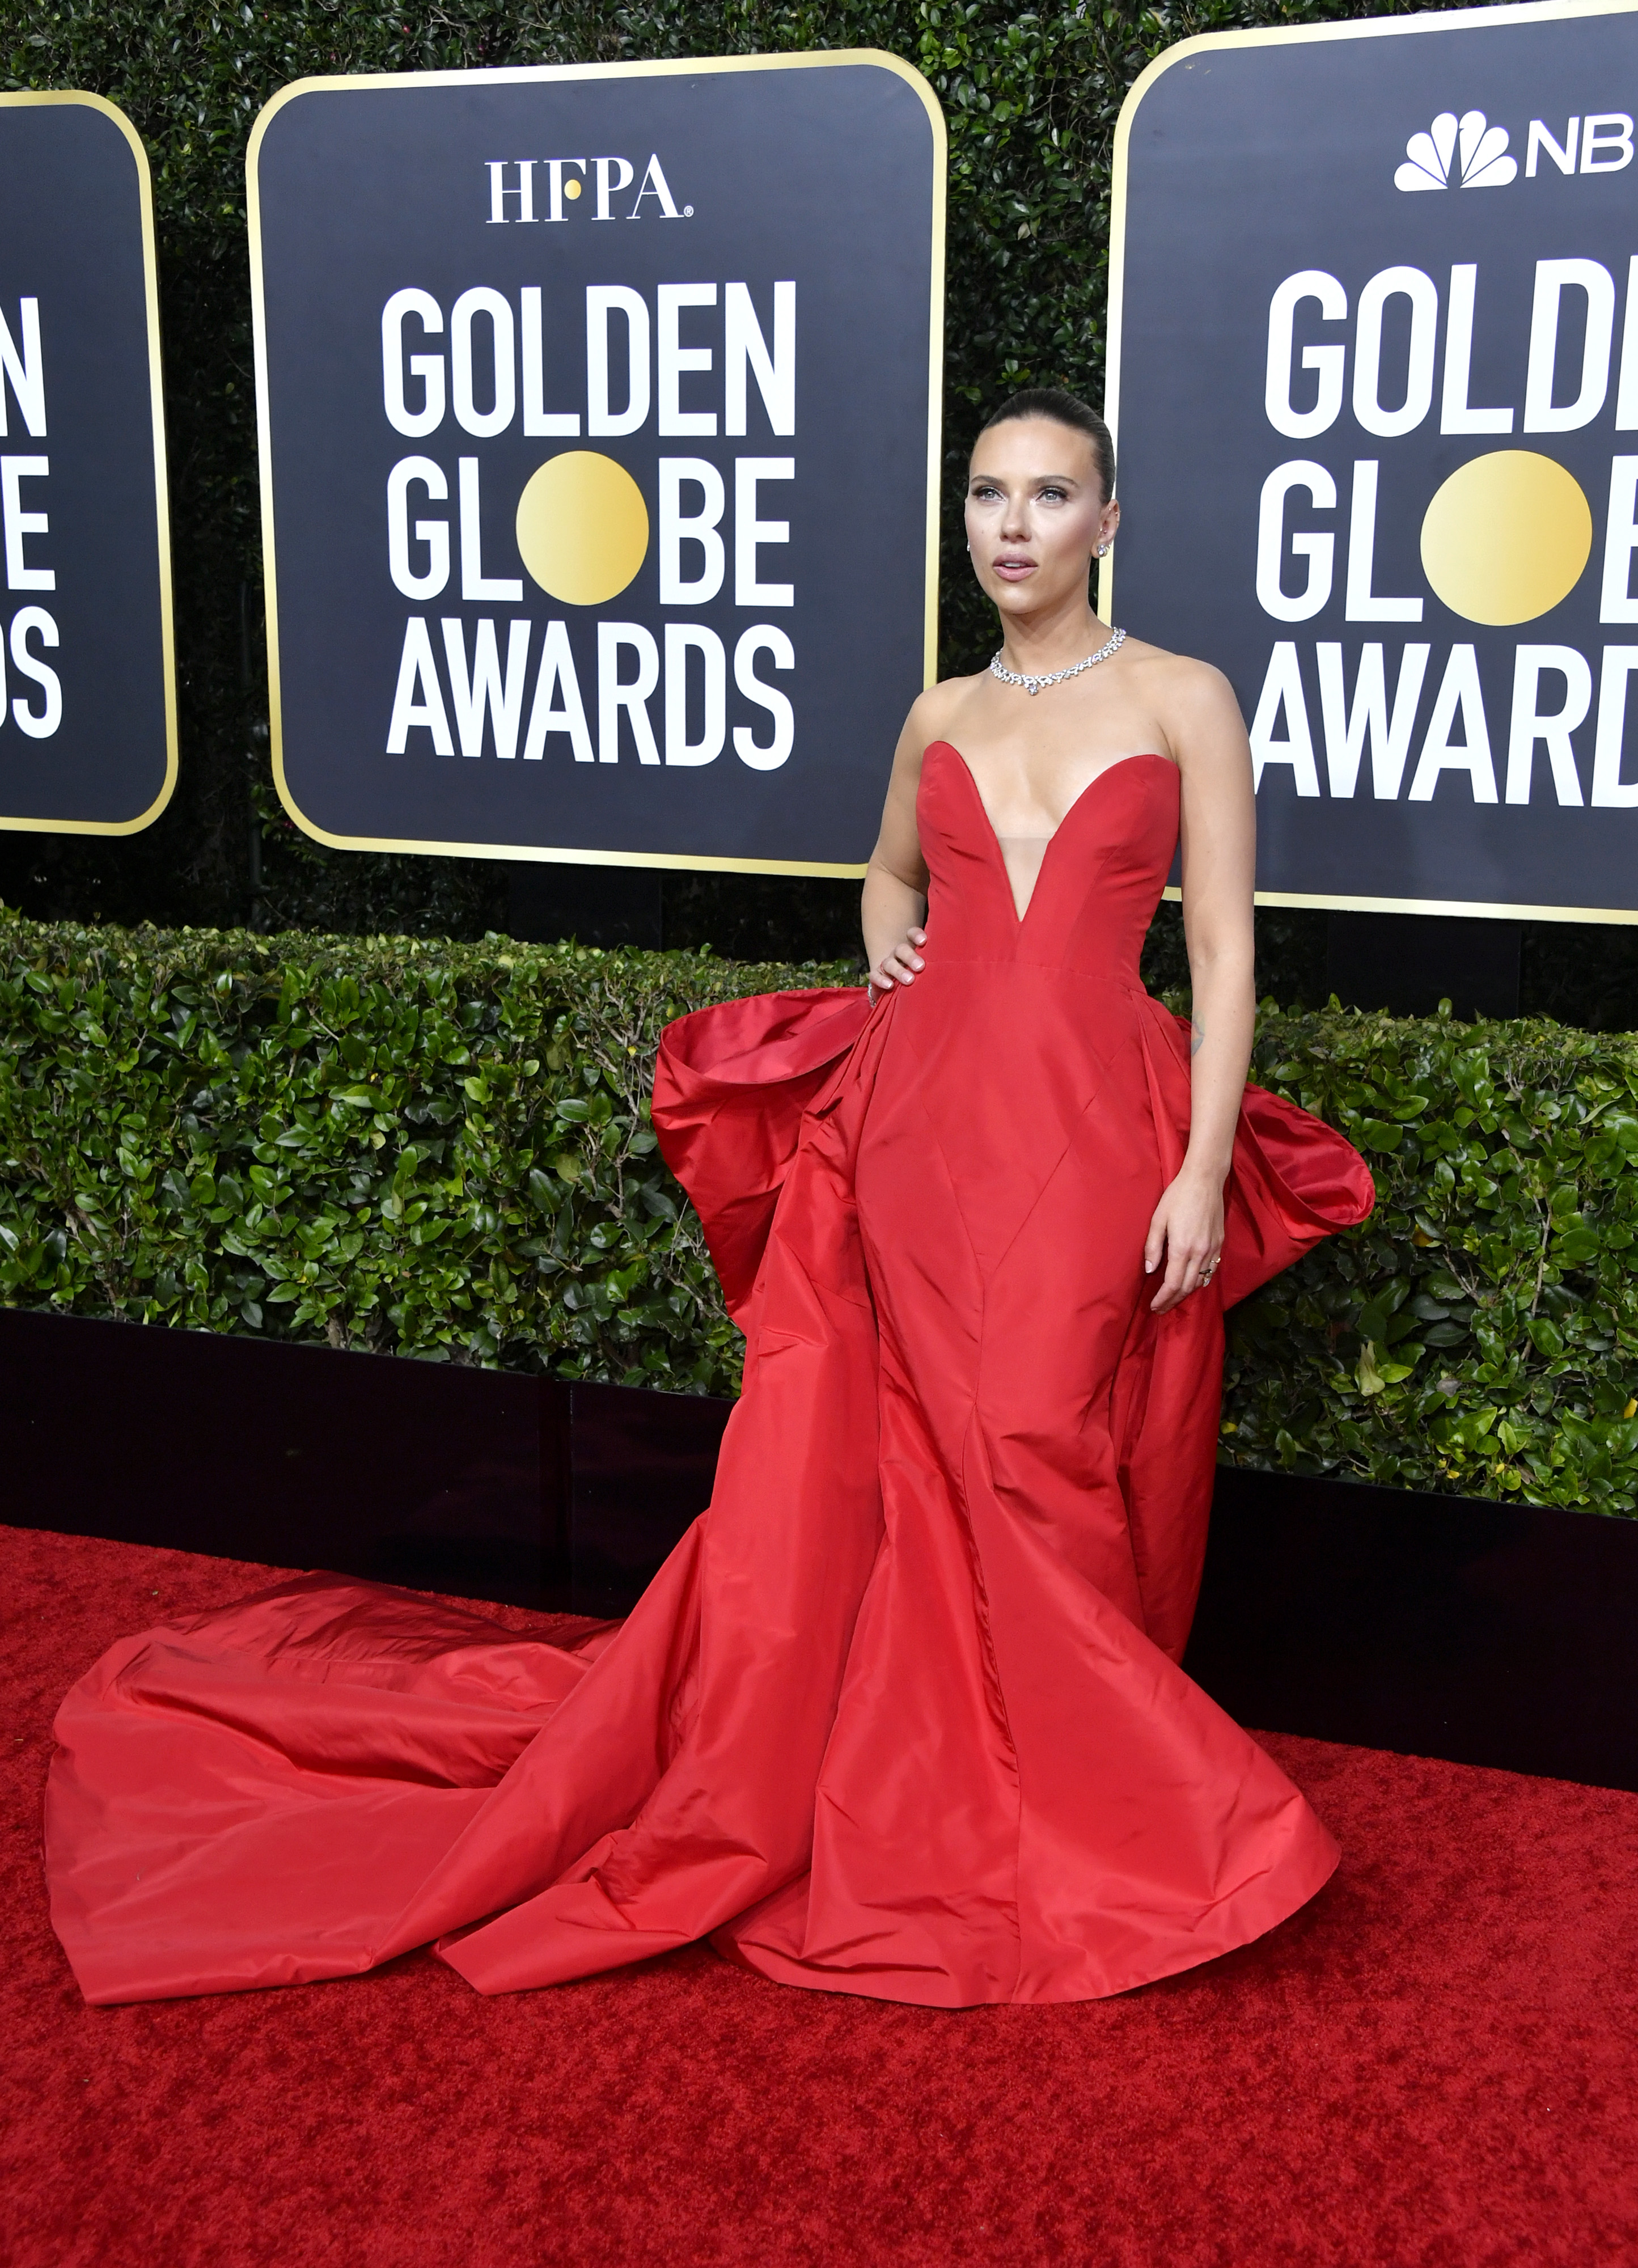 BEVERLY HILLS, CALIFORNIA - JANUARY 05: Scarlett Johansson attends the 77th Annual Golden Globe Awards at The Beverly Hilton Hotel on January 05, 2020 in Beverly Hills, California. (Photo by Frazer Harrison/Getty Images)